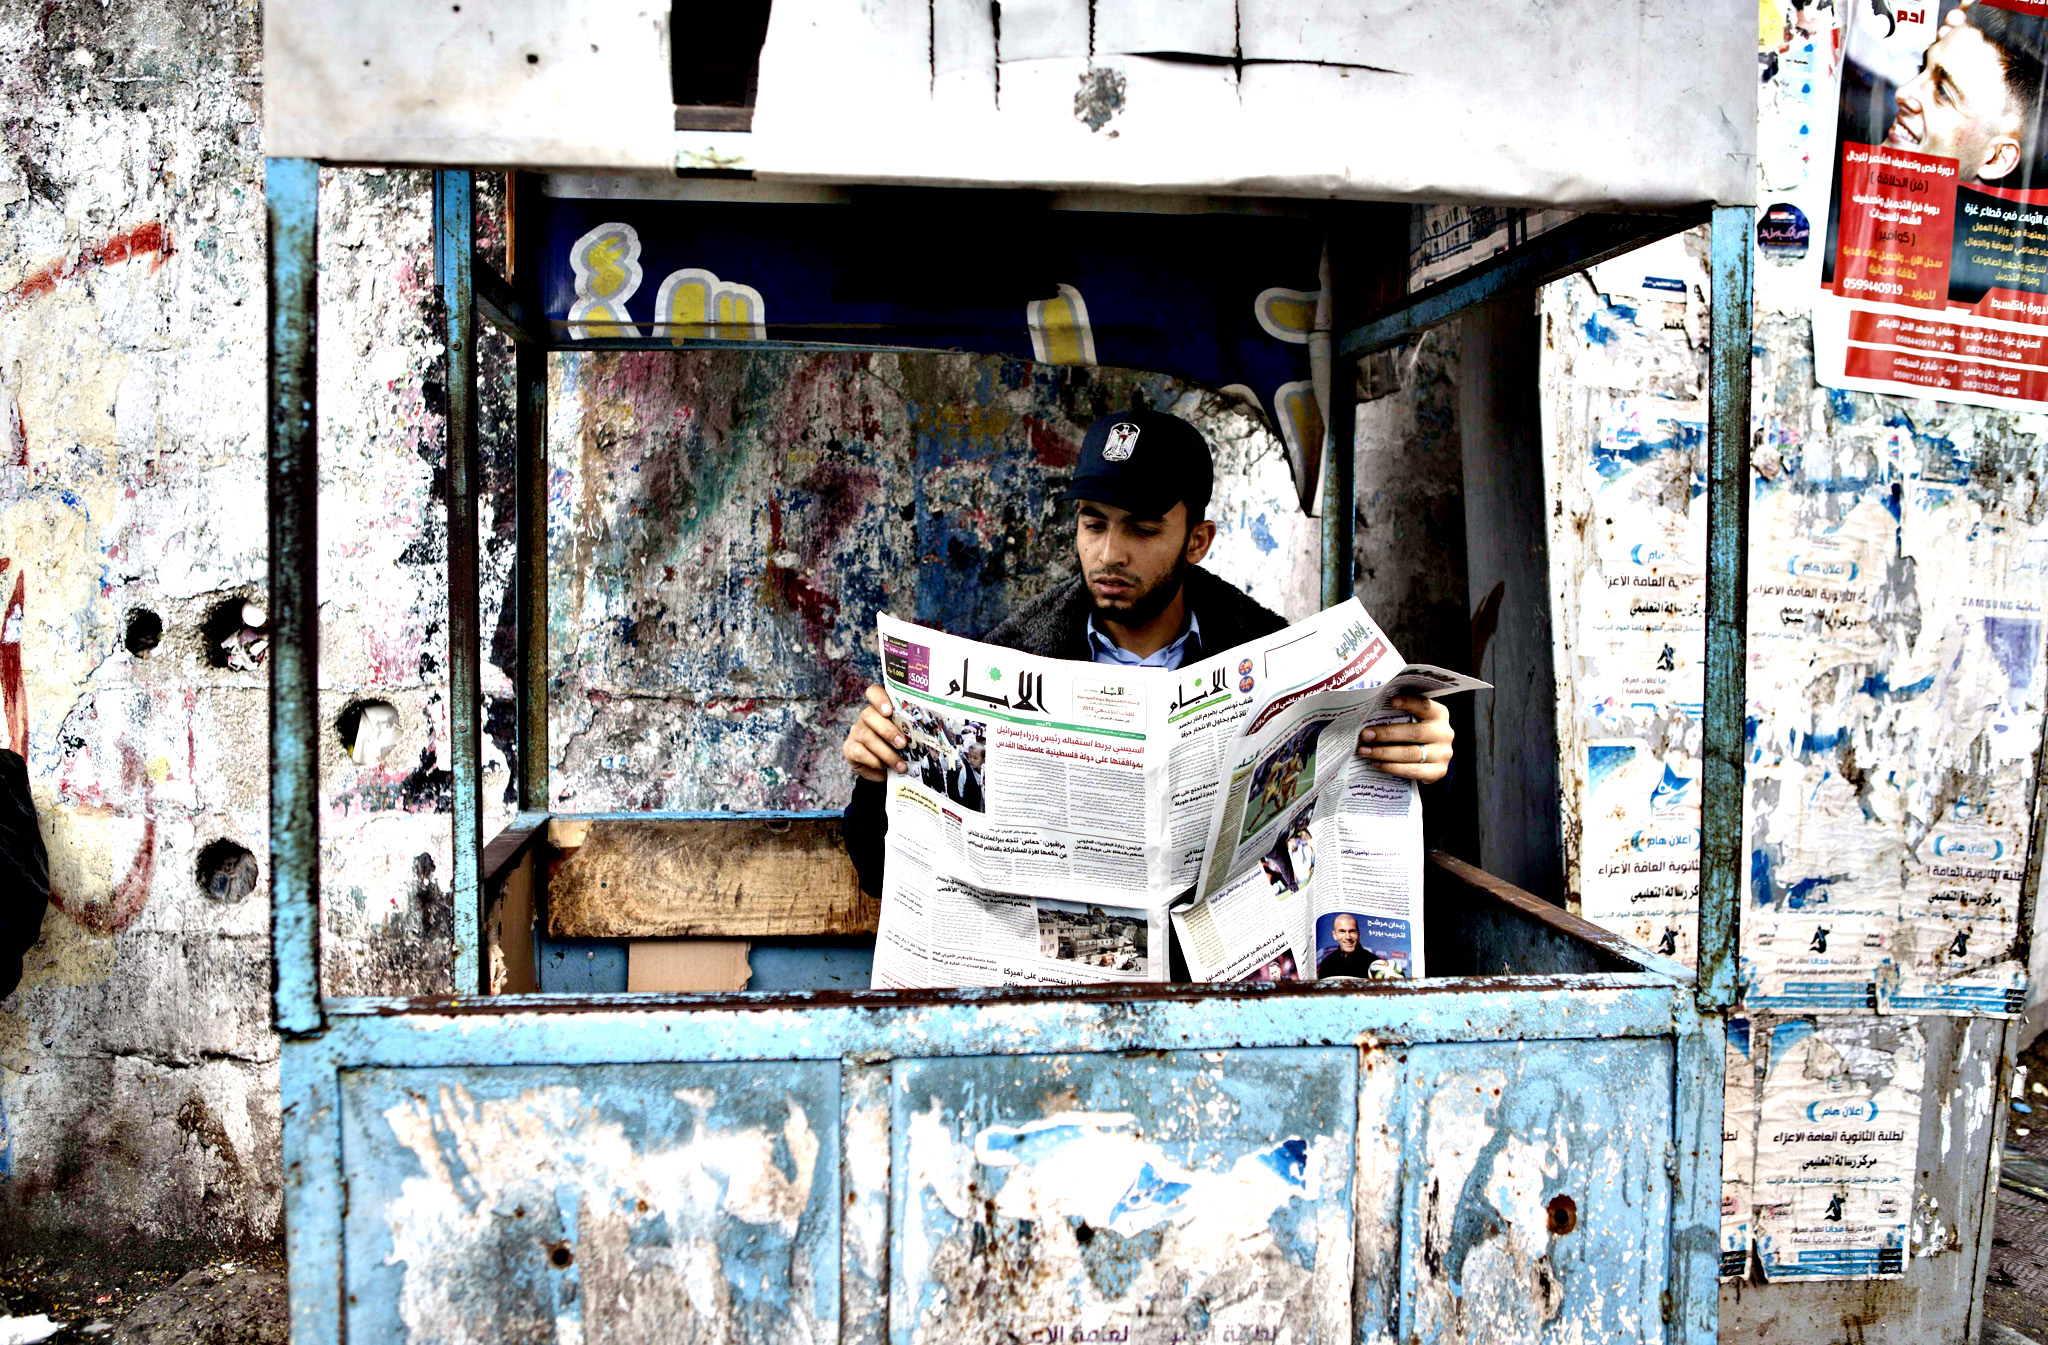 A Palestinian Hamas policeman reads a copy of the Al-Ayyam newspaper in Gaza City, on May 8, 2014. The Palestinian daily which is edited and printed in the West Bank city of Ramallah has been allowed by the Hamas to be distributed in the Gaza strip for the first time in seven years, after the Islamist movement and the western-backed Palestinian Authority signed a surprise reconciliation agreement on April 23 in a bid to end years of bitter and sometime bloody rivalry.